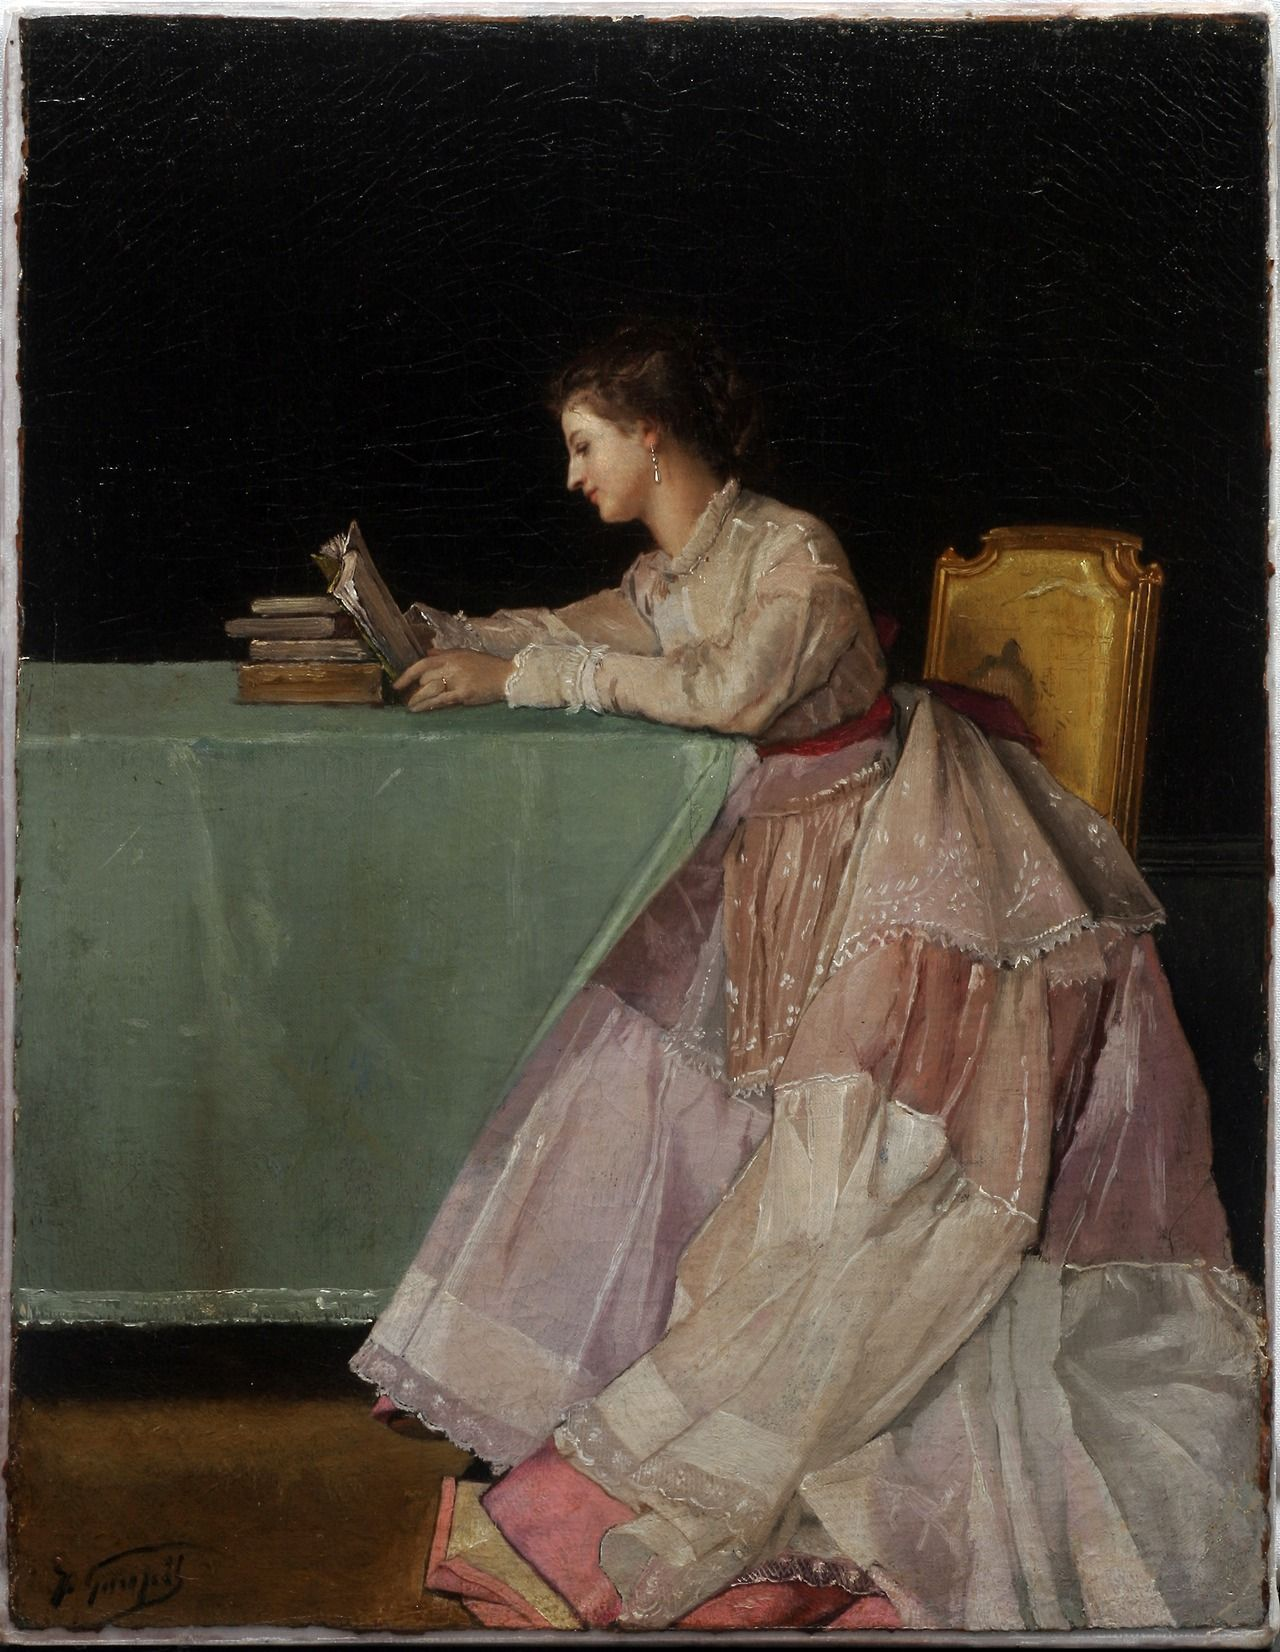 Seated Woman. Jules Adolphe Goupil (French, 1839-1883). Oil on canvas. Vanderbilt University Fine Arts Gallery. As with Seated Woman, Goupil was known for painting genre scenes and portraits with a wonderful tightness and exactitude. The face of the woman, the books, and her dress are highlighted by means of the background black, floor brown, and tablecloth green.